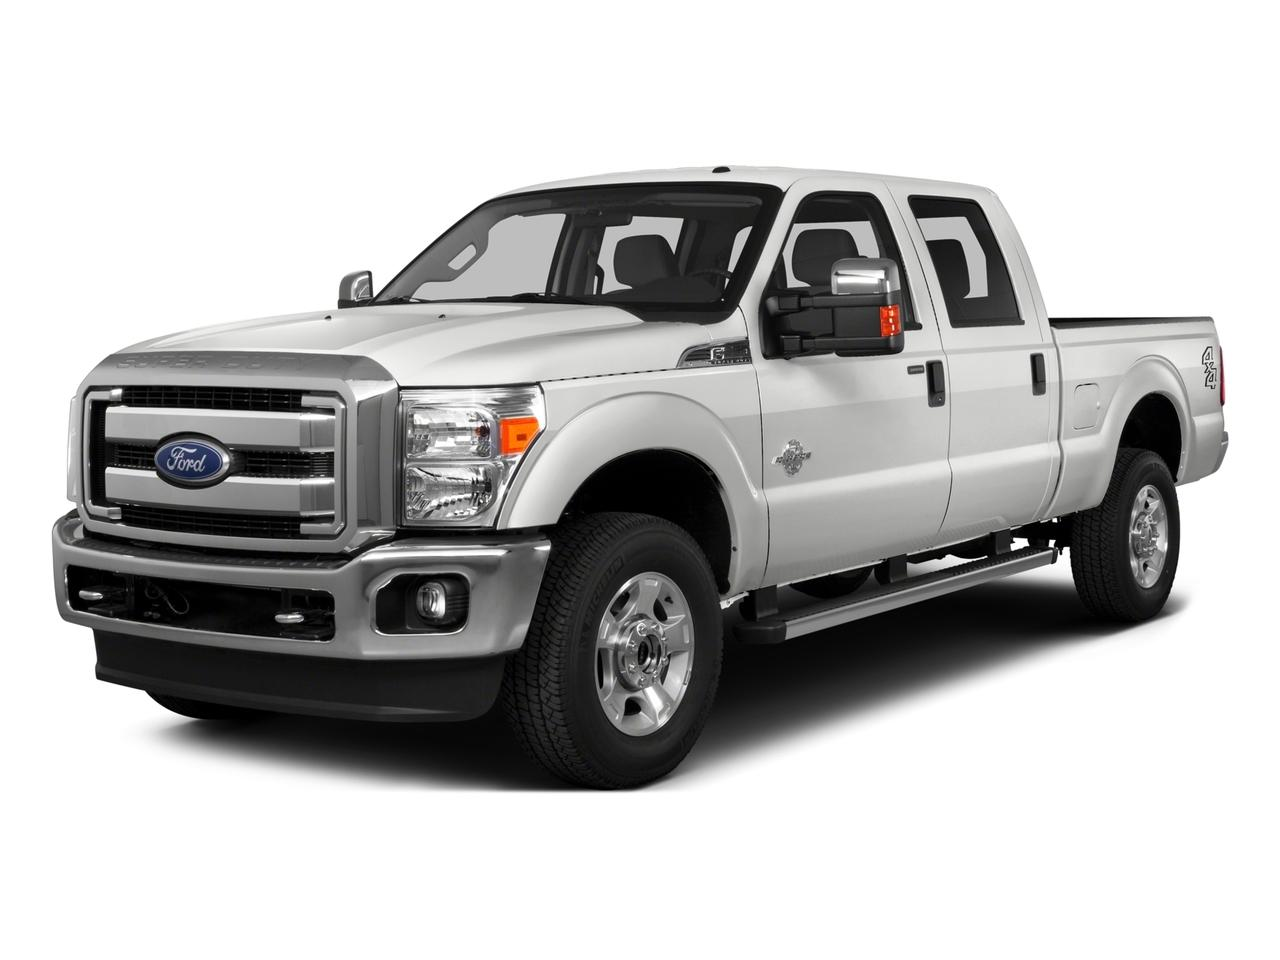 2016 Ford Super Duty F-250 SRW Vehicle Photo in Austin, TX 78759